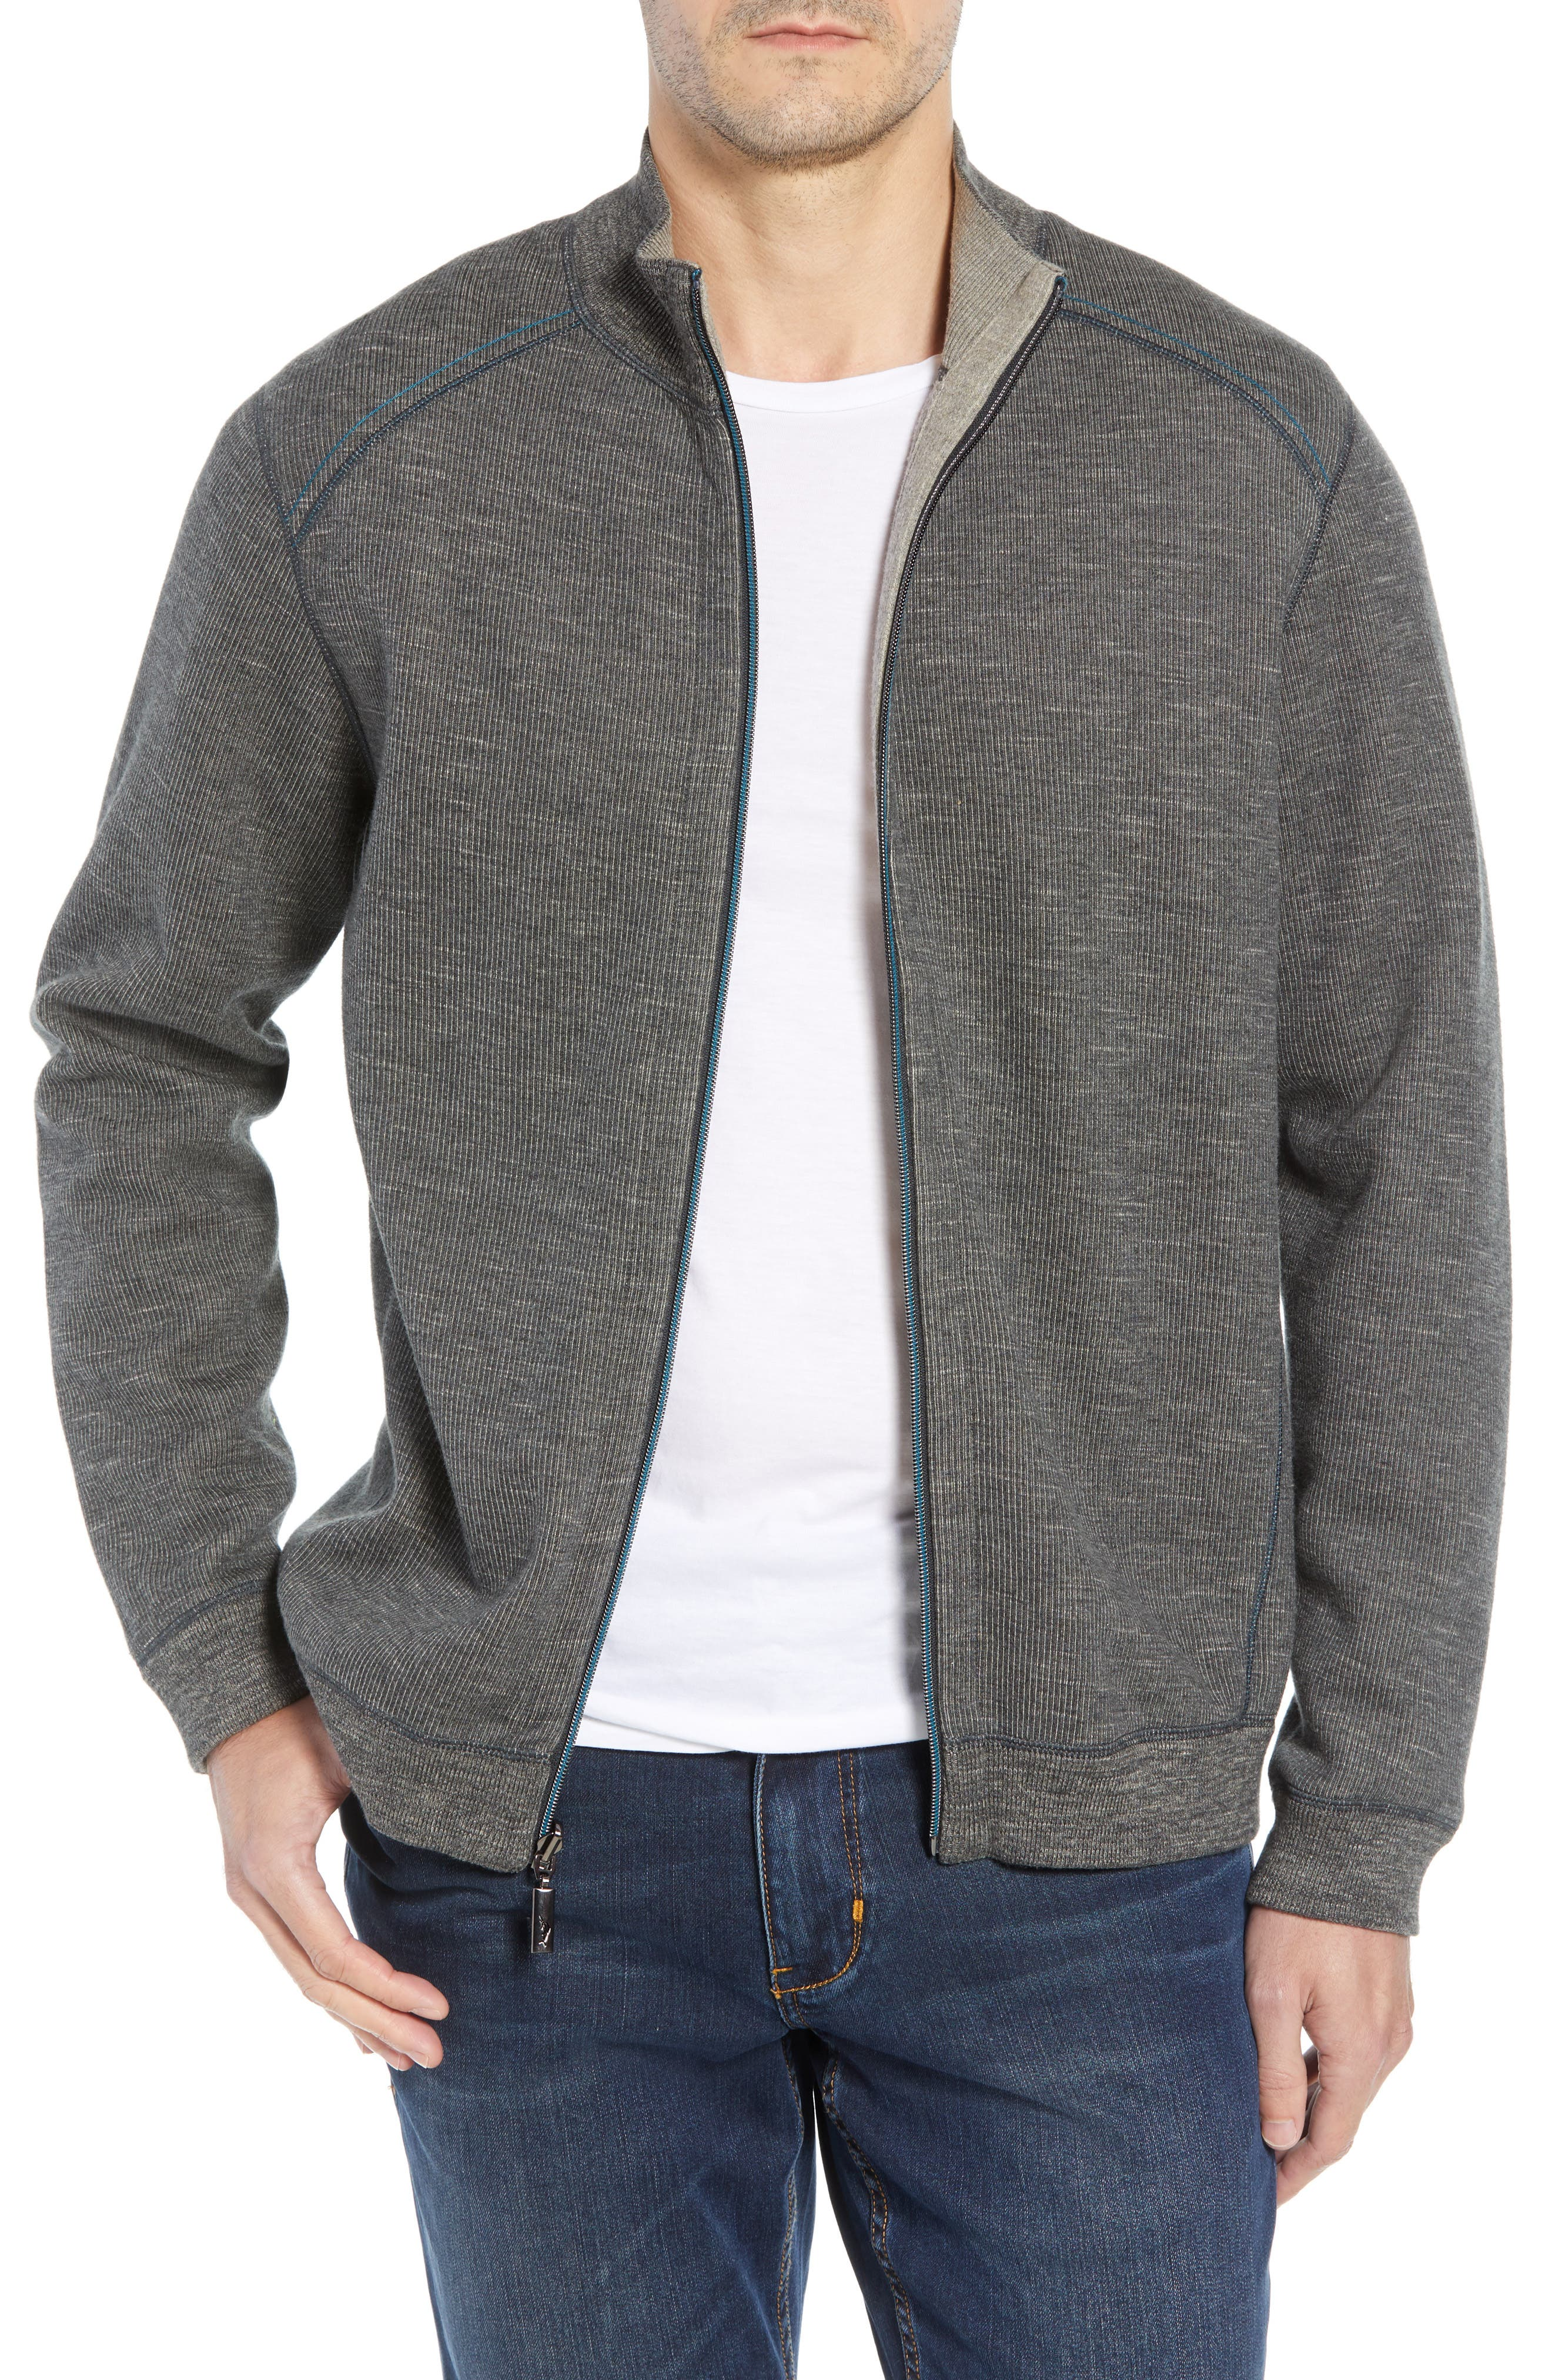 Flipsider Reversible Jacket,                         Main,                         color, ONYX HEATHER